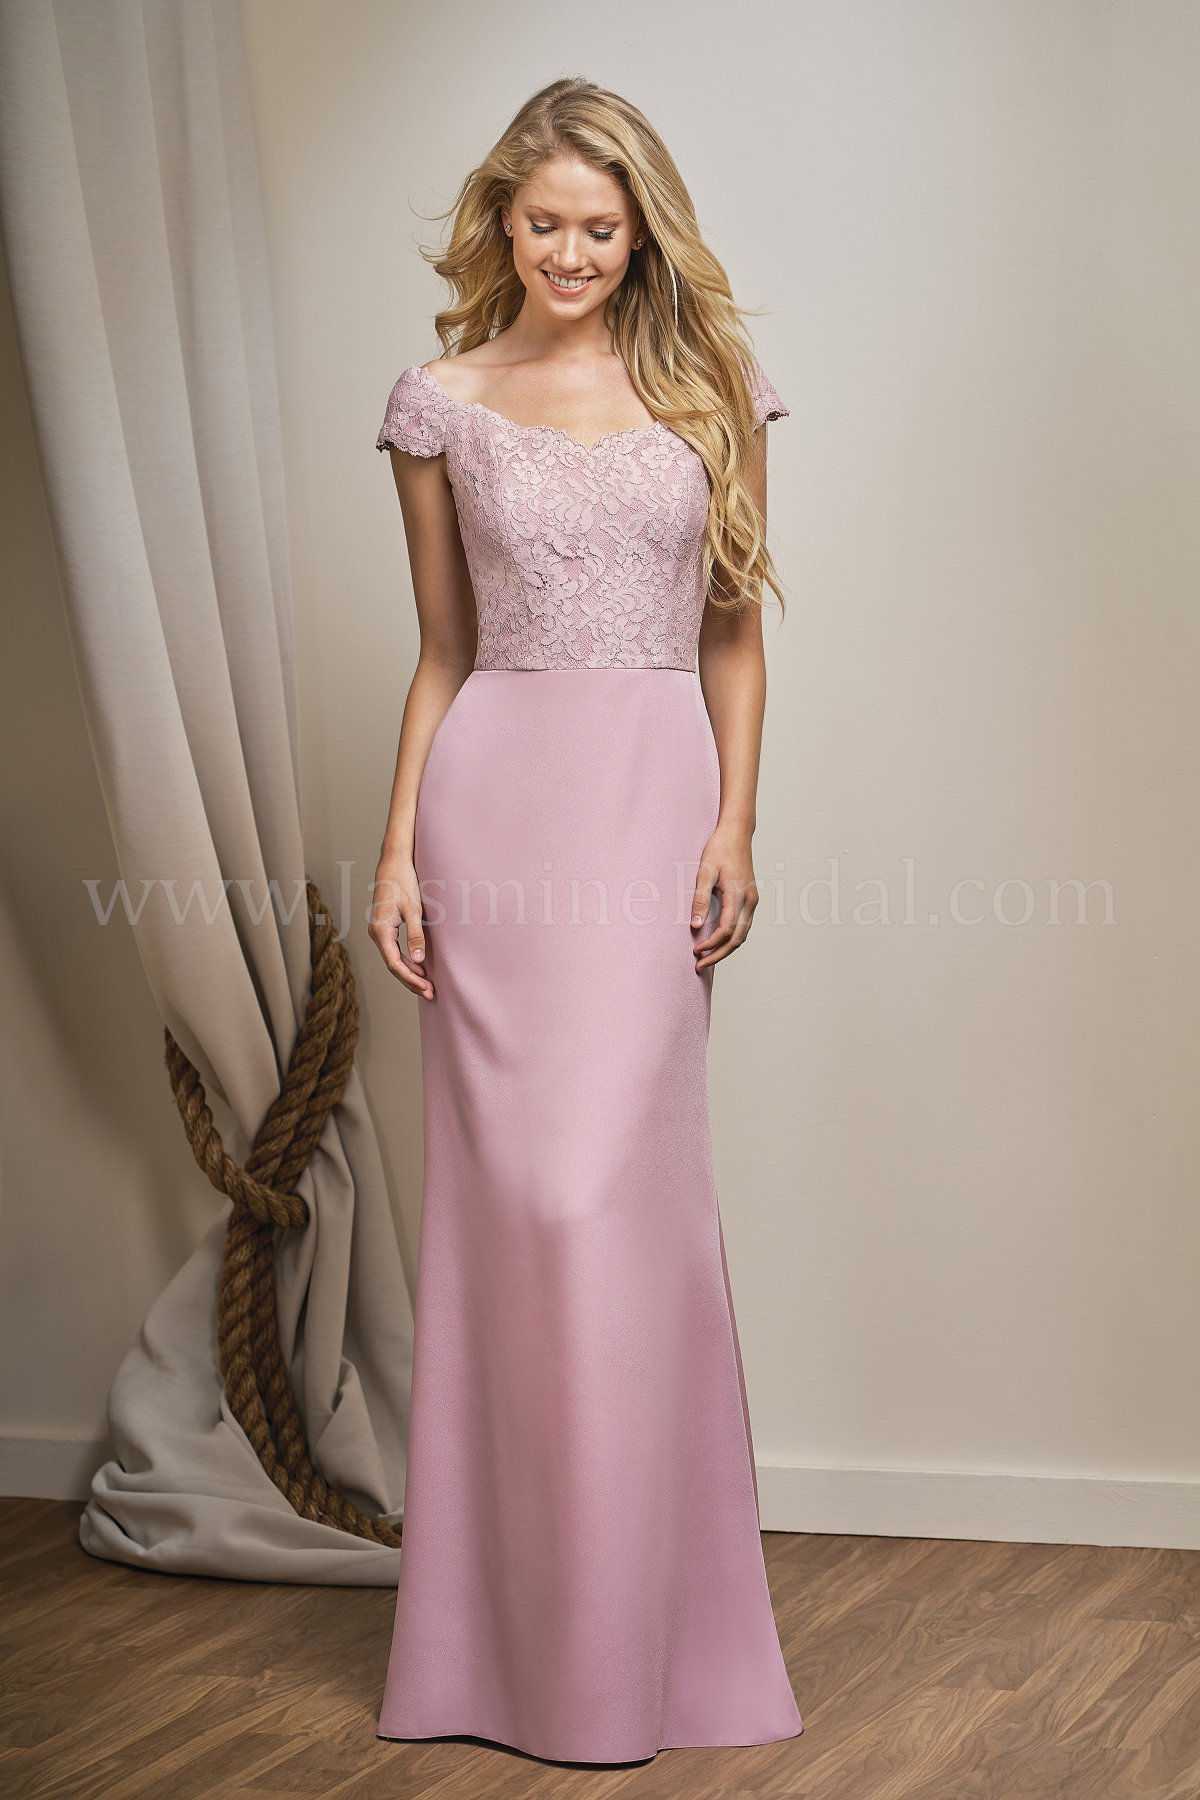 bridesmaid-dresses-L204015-F